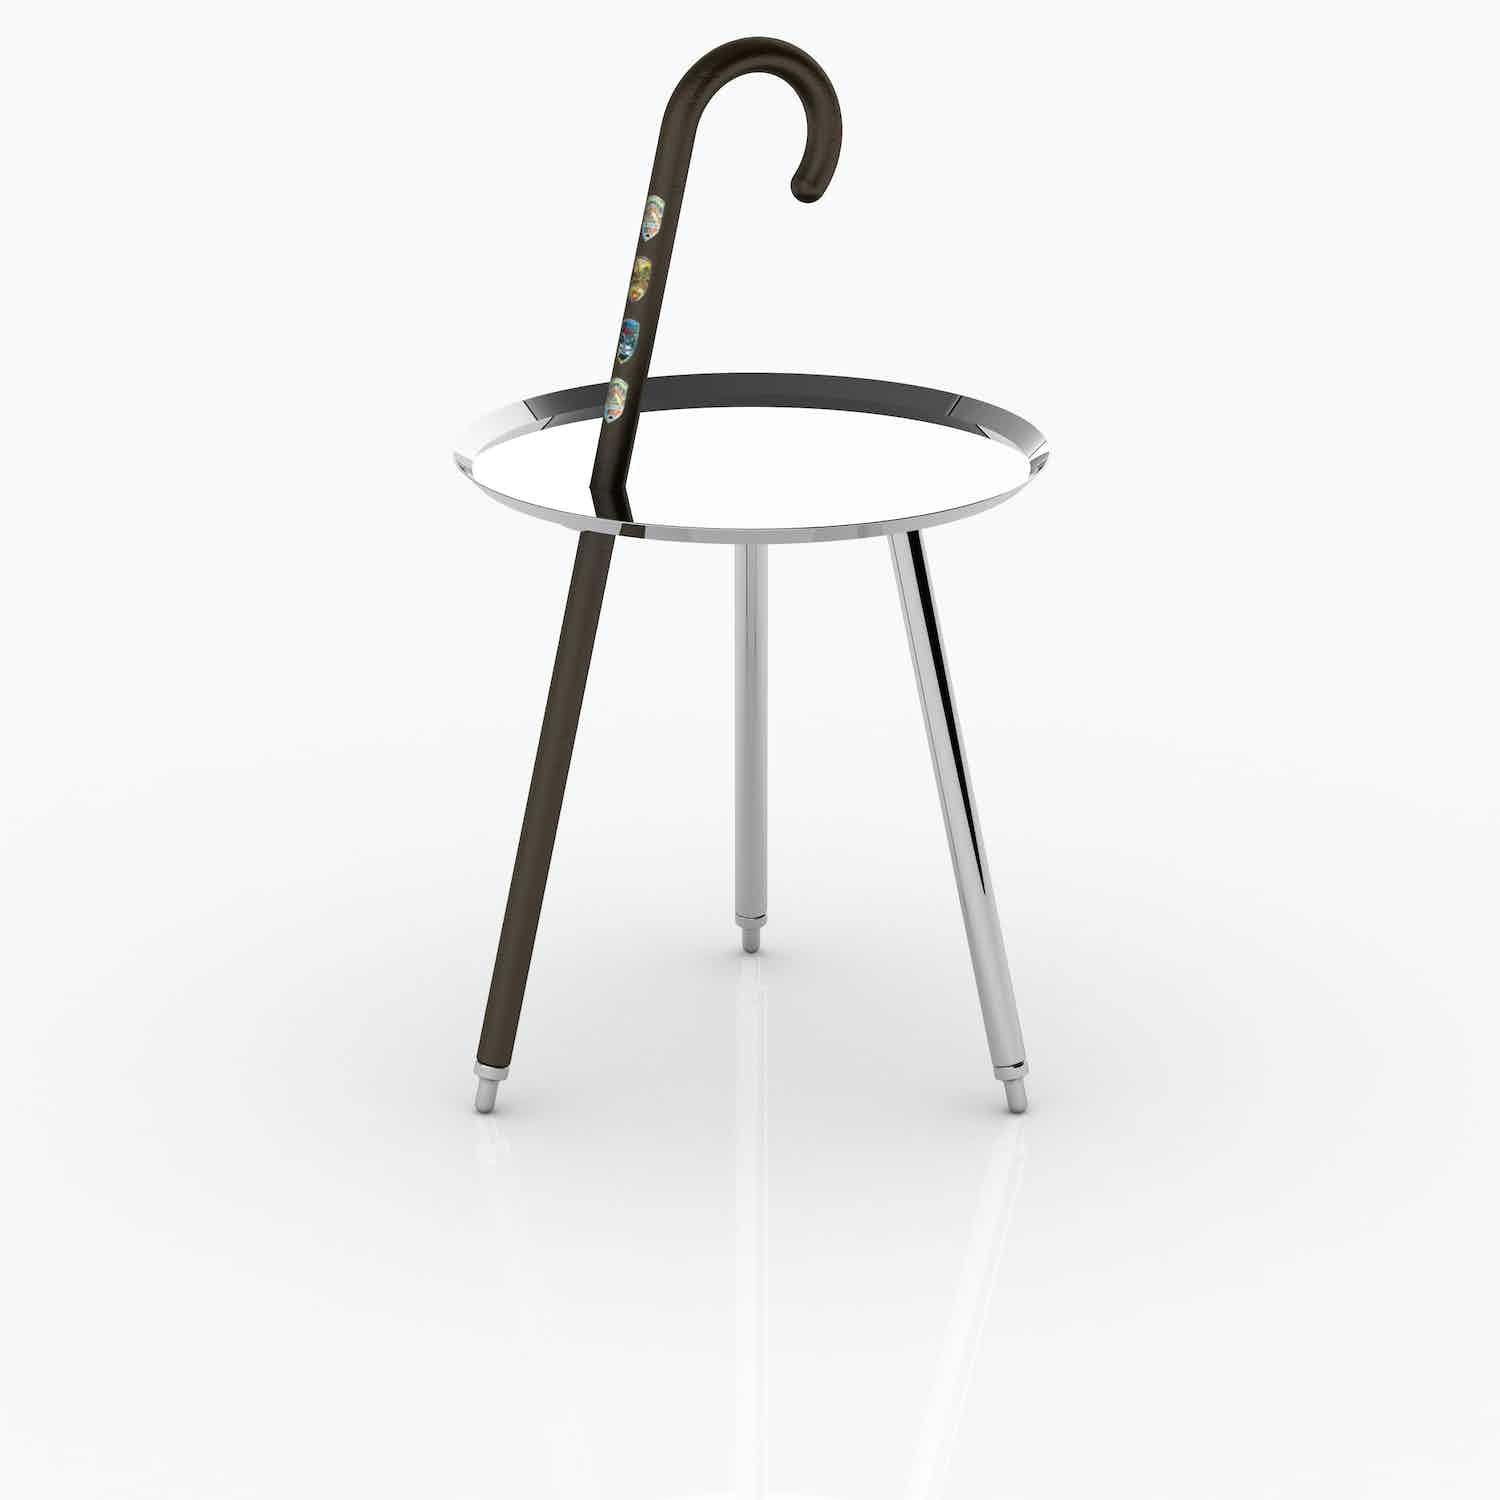 Urbanhike By Marcel Wanders For Moooi